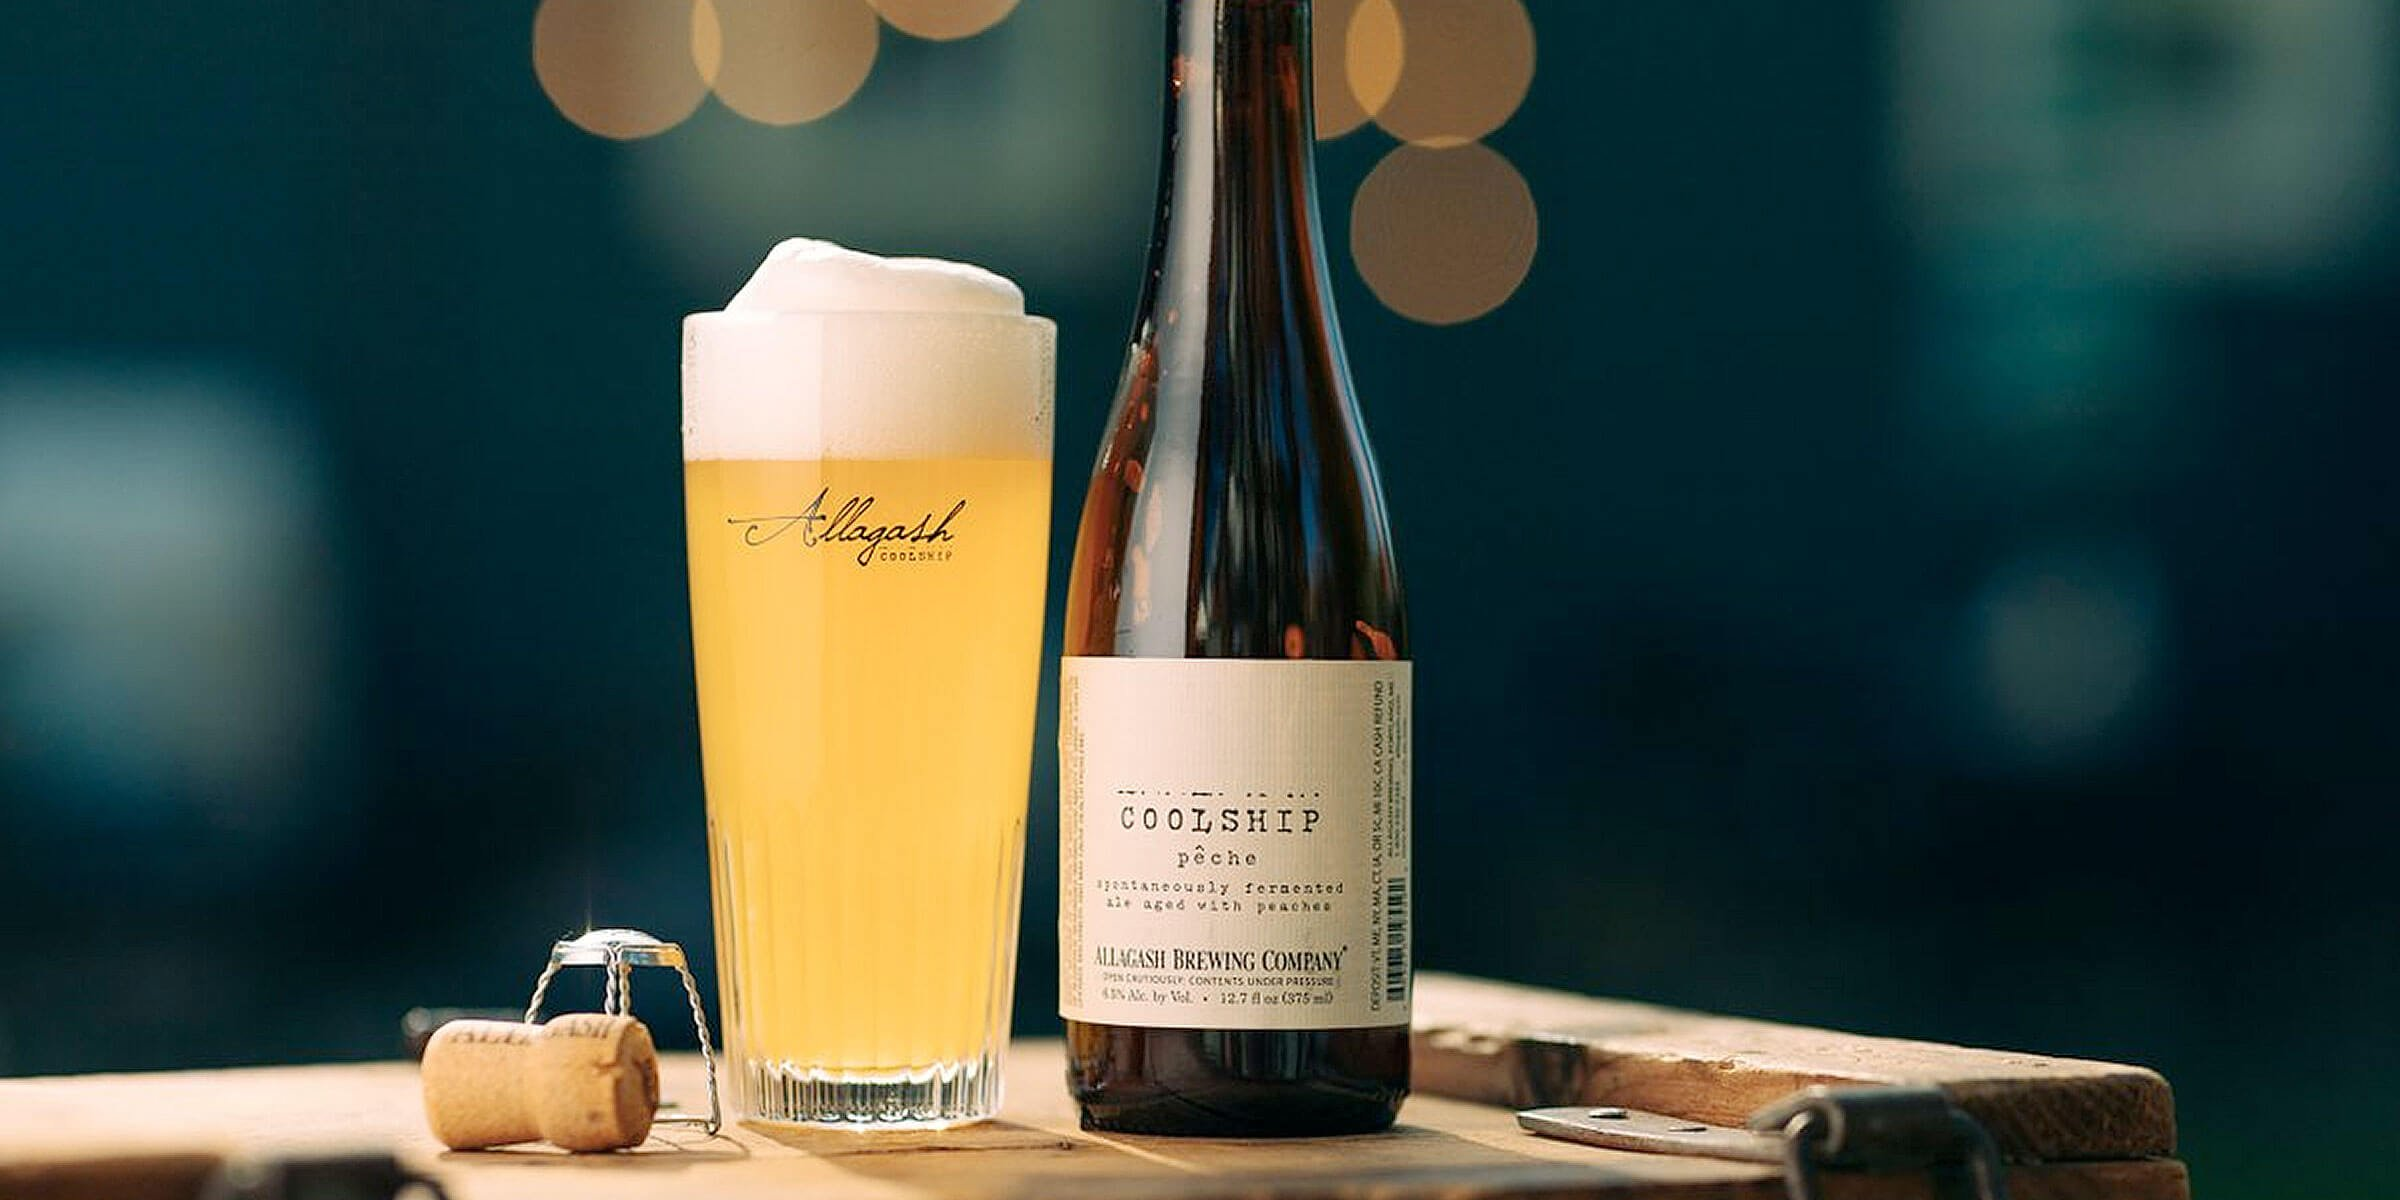 Allagash Brewing Company will return to distributing their beers in Wisconsin, including this new one-off, the Coolship Pêche.